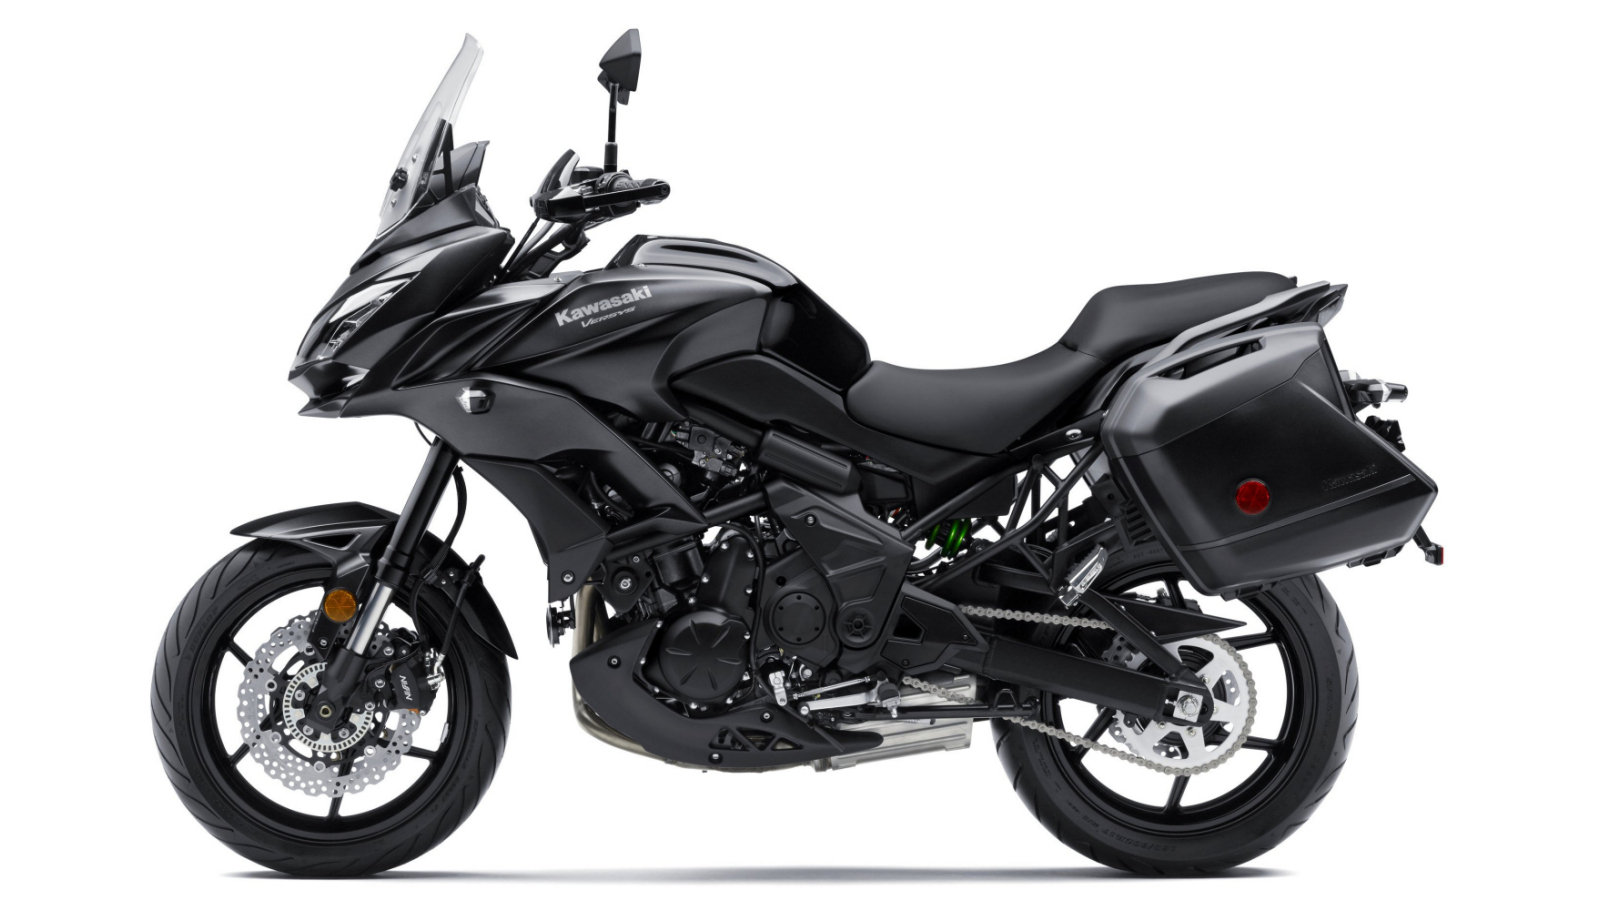 2015 2017 kawasaki versys 650 versys 650 lt versys 1000 lt picture 684431 motorcycle. Black Bedroom Furniture Sets. Home Design Ideas